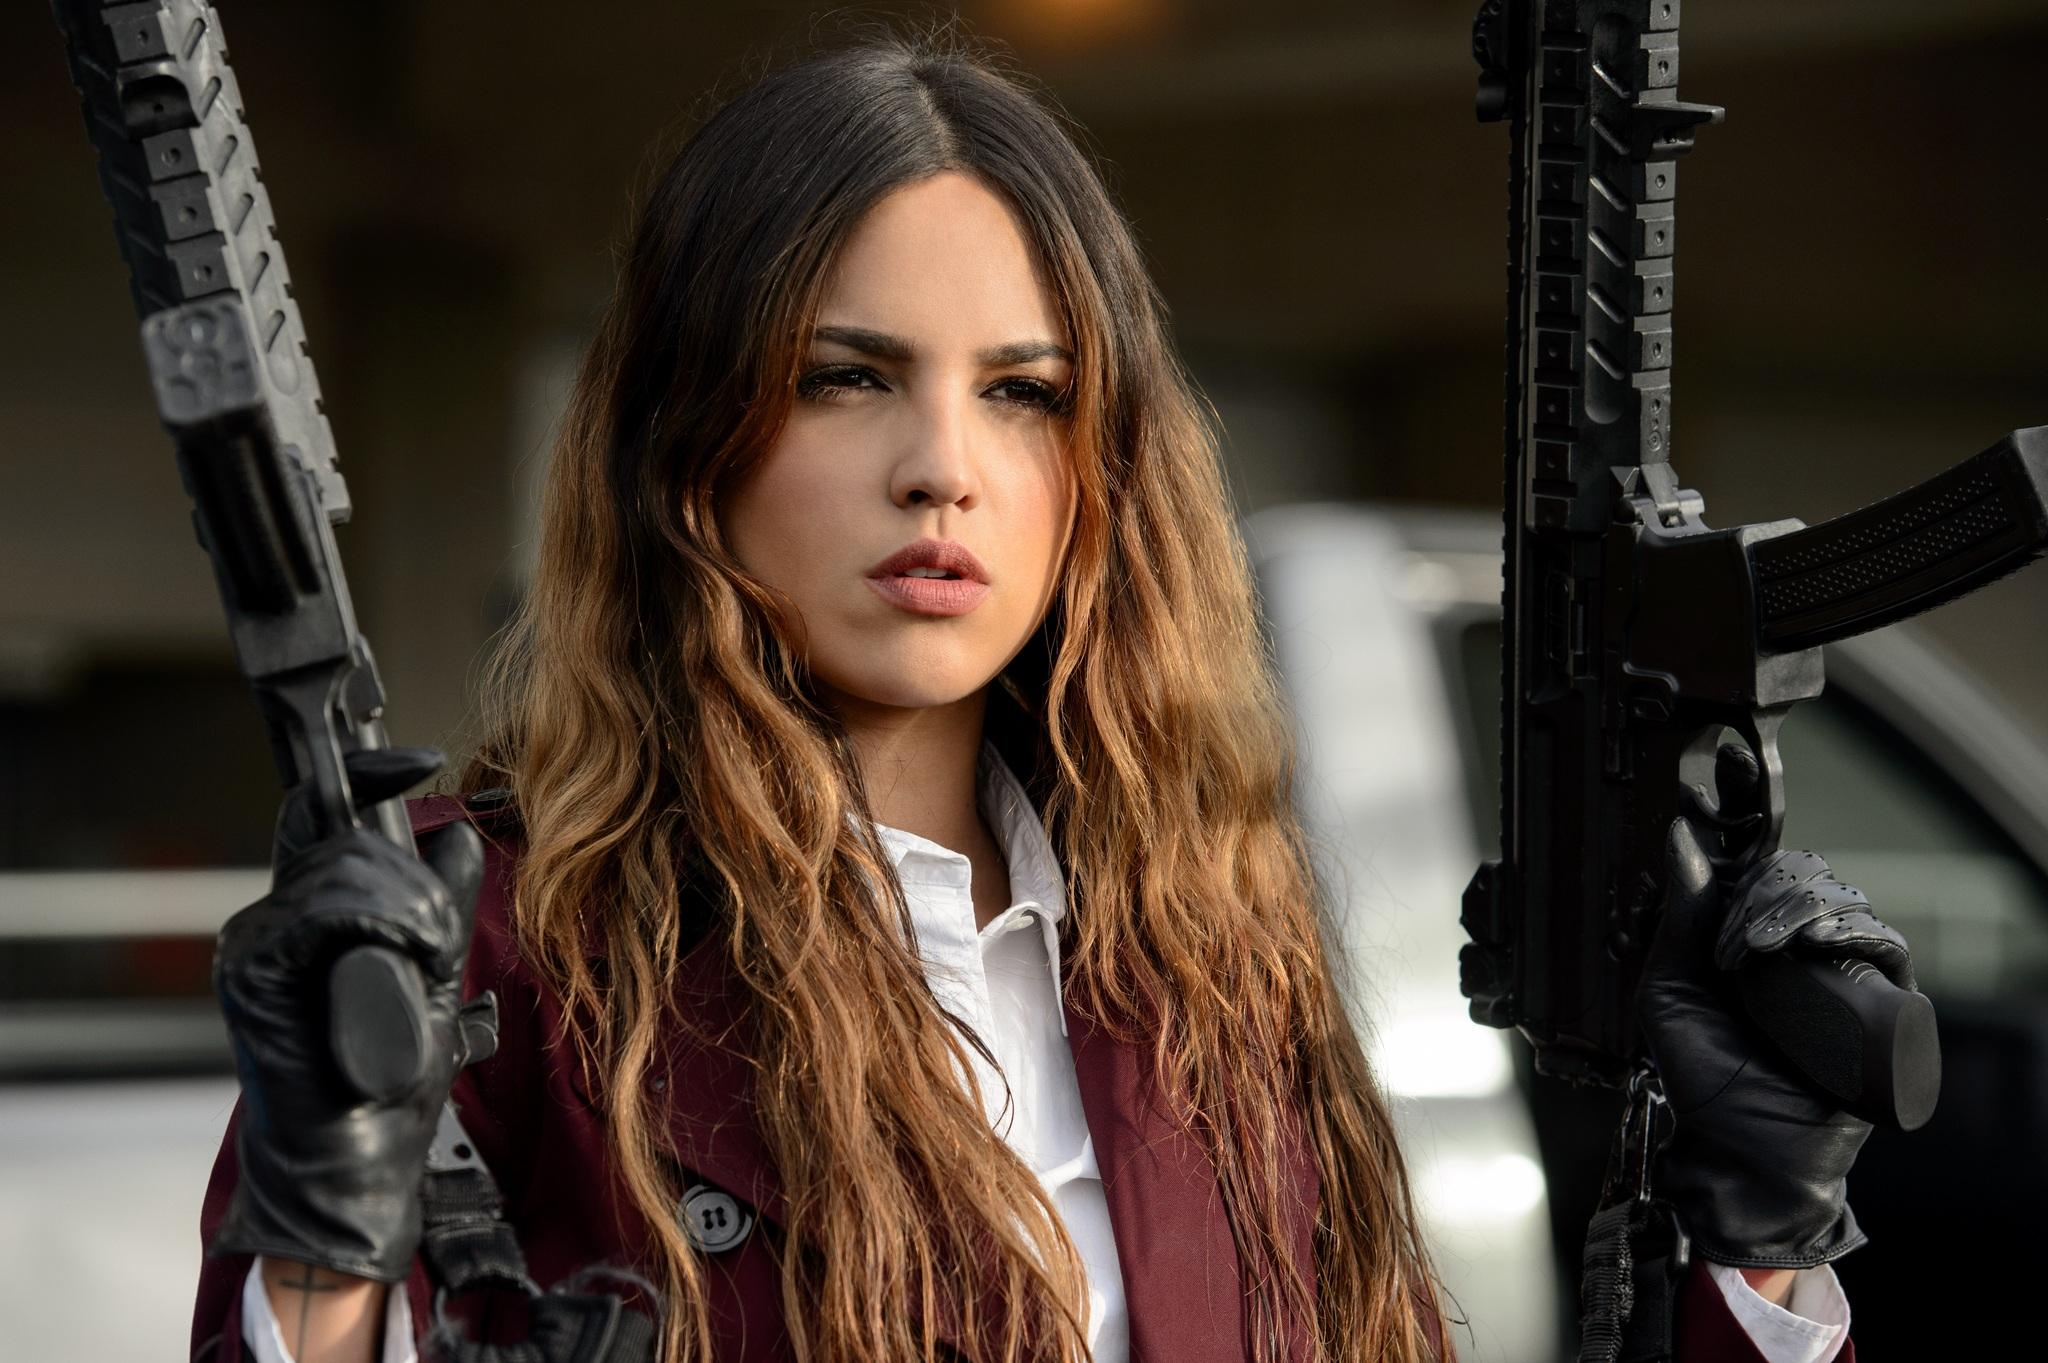 Eiza González On Landing a Role in 'Baby Driver,' the Most Critically Acclaimed Film of the Summer